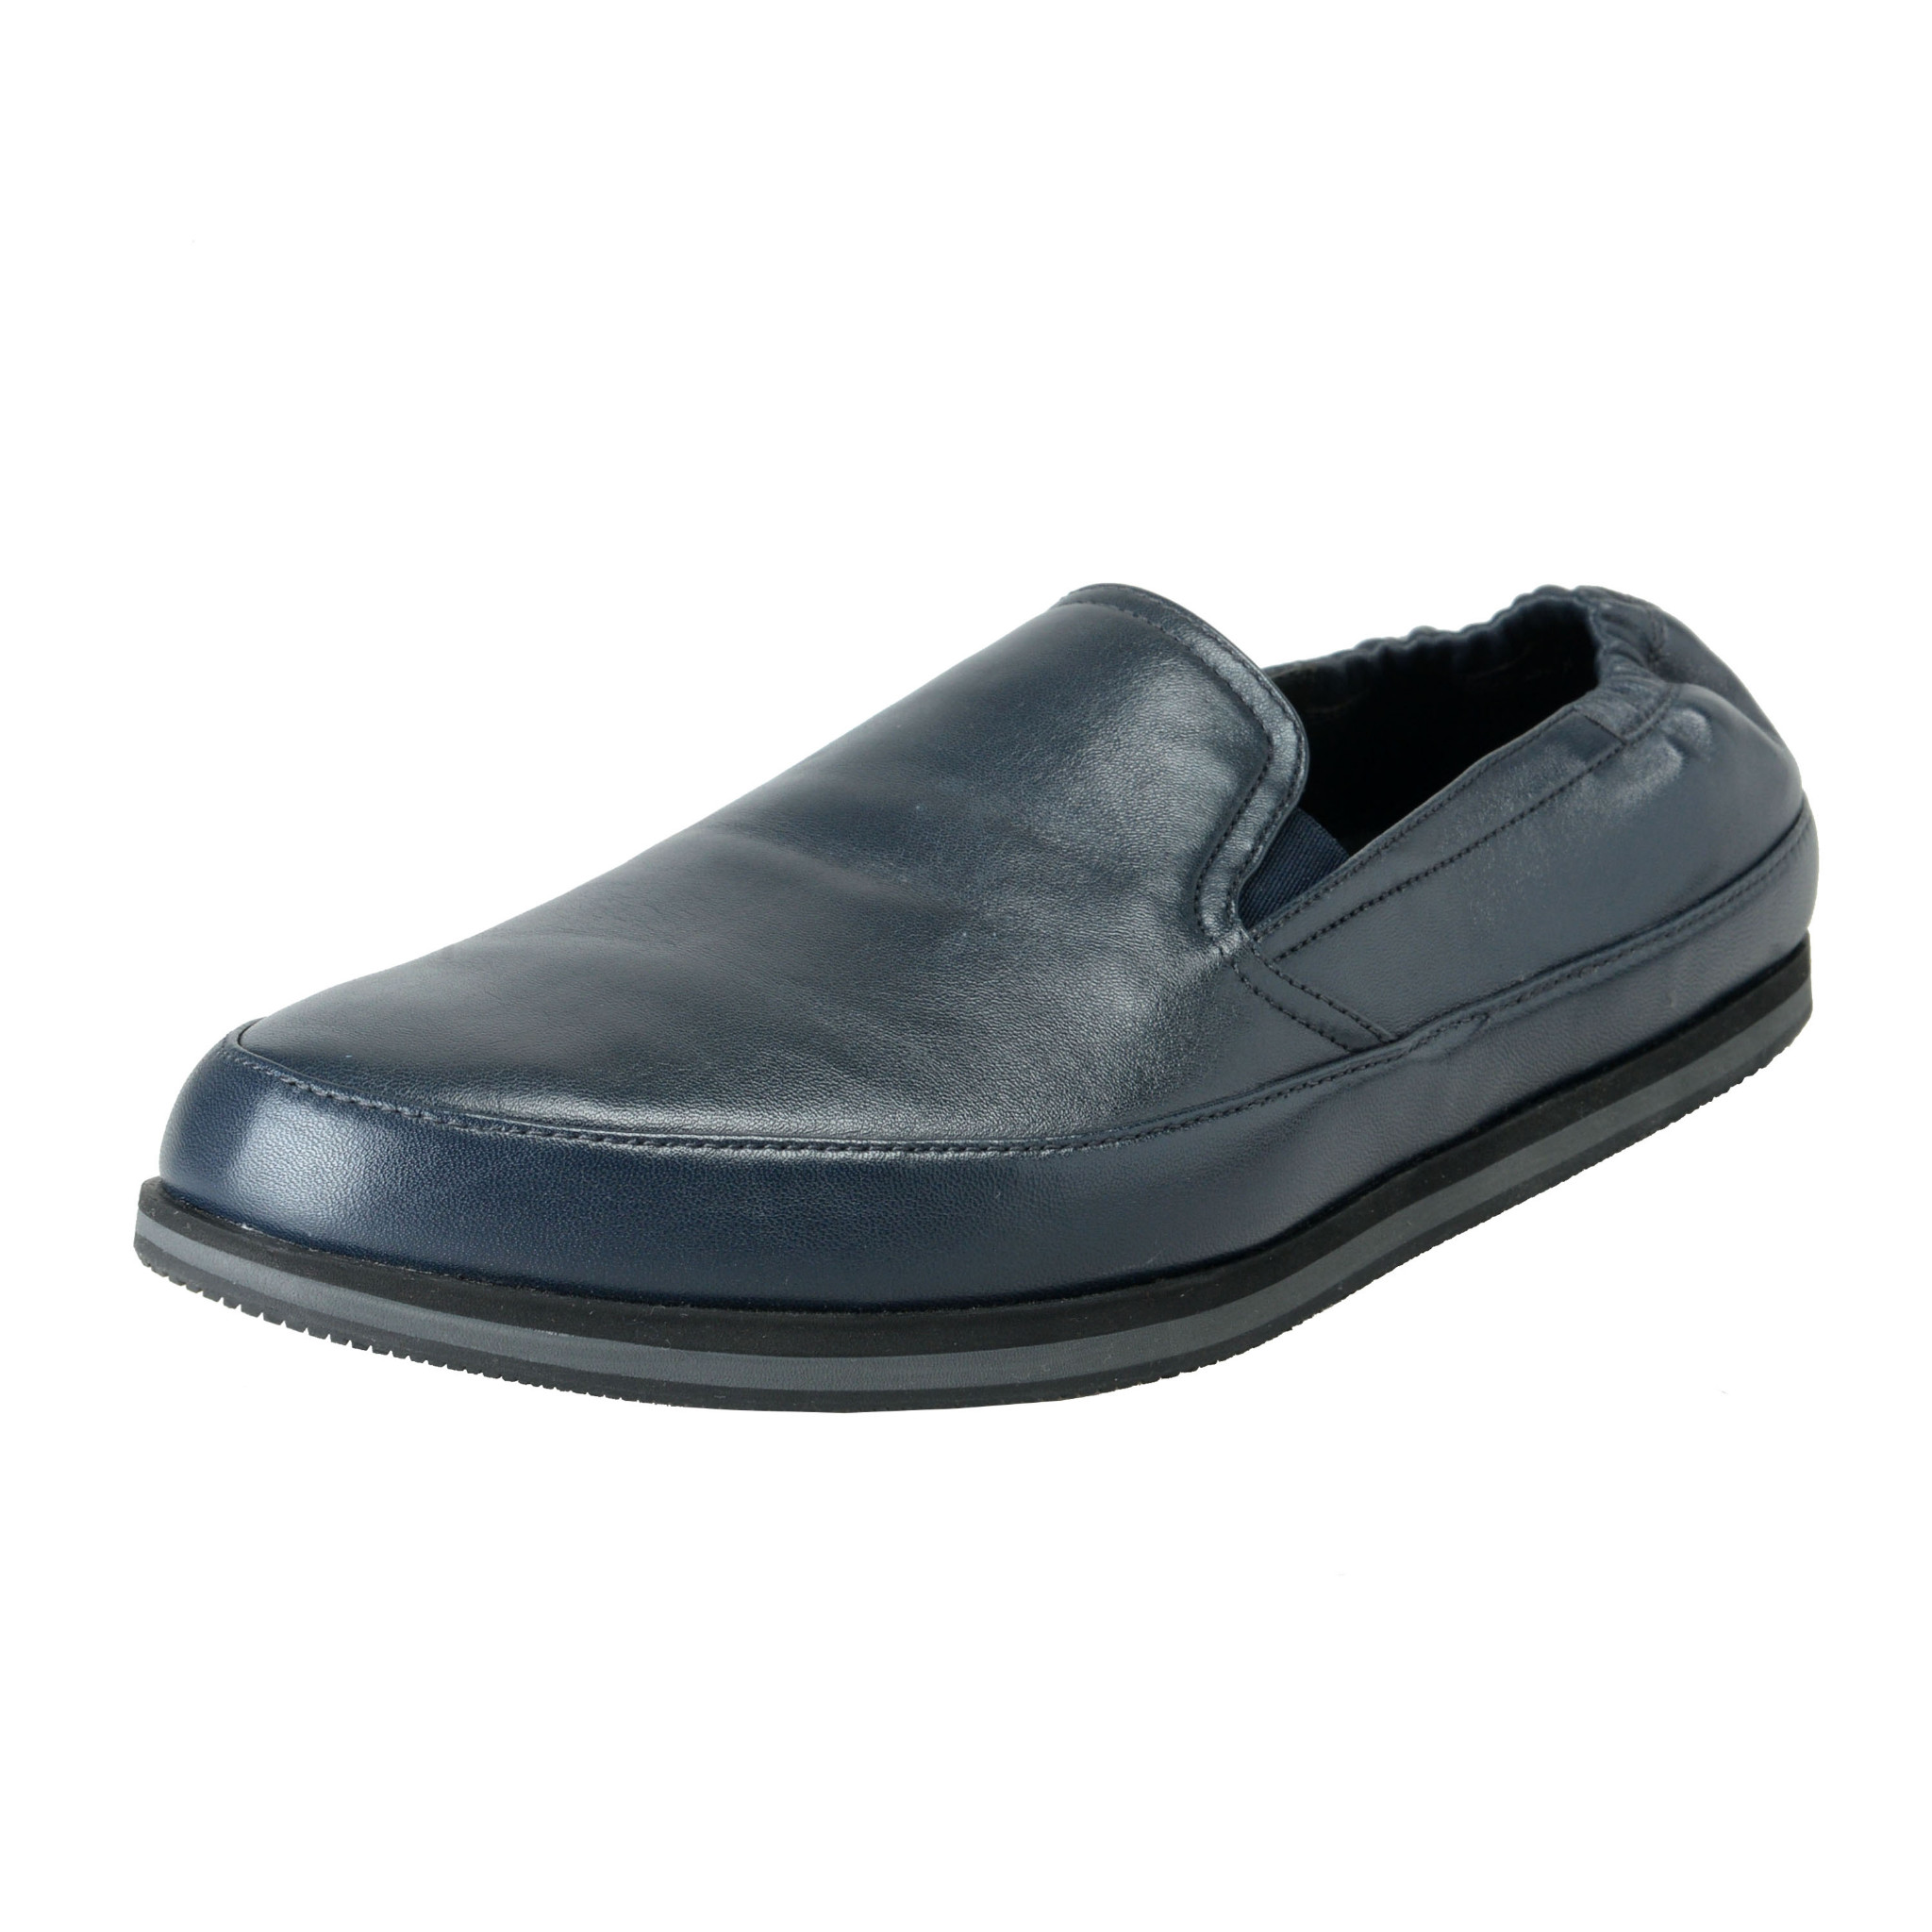 03a9492f8e8 Details about Prada Men s Deep Blue Leather Casual Slip On Loafers Shoes Sz  10 10.5